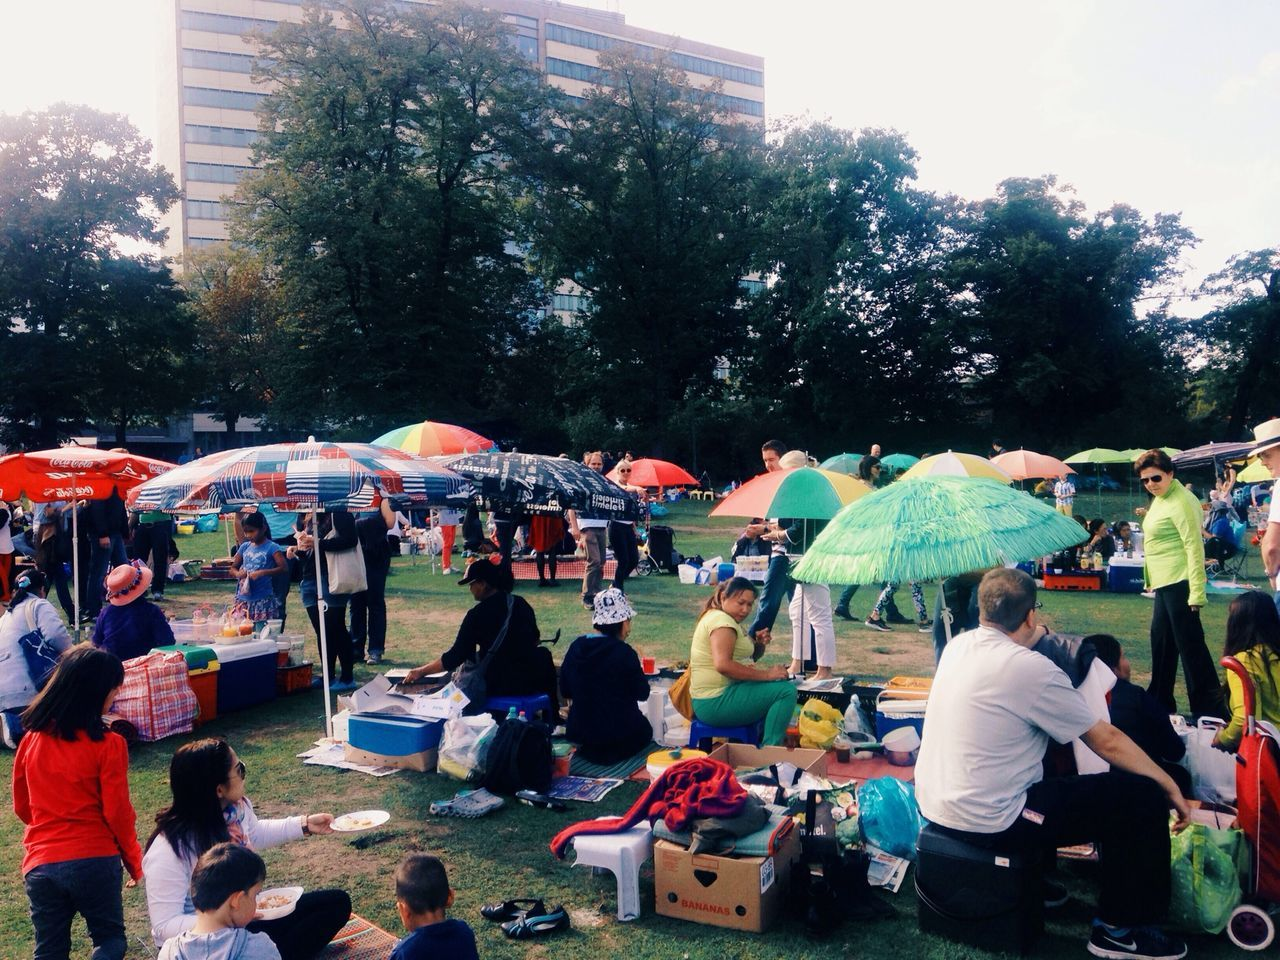 People at picnic in park